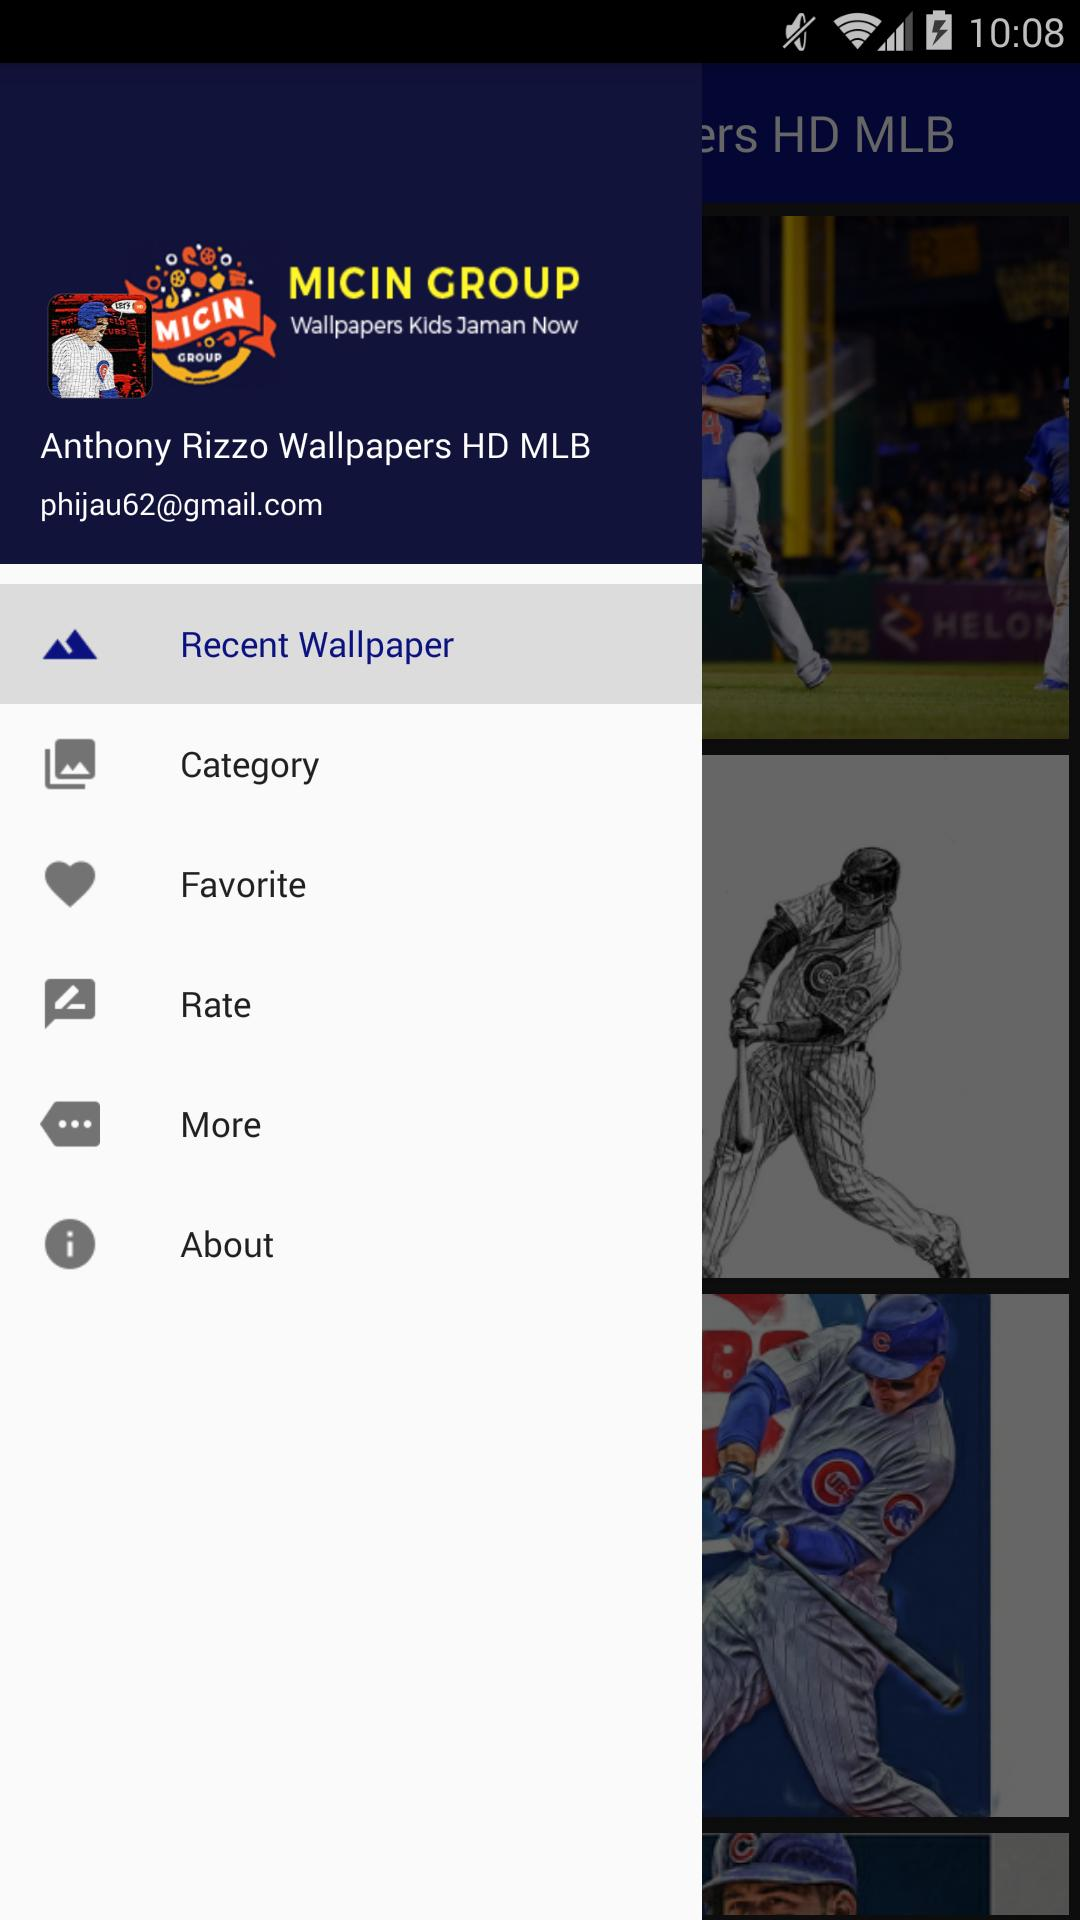 Anthony Rizzo Wallpapers HD MLB poster